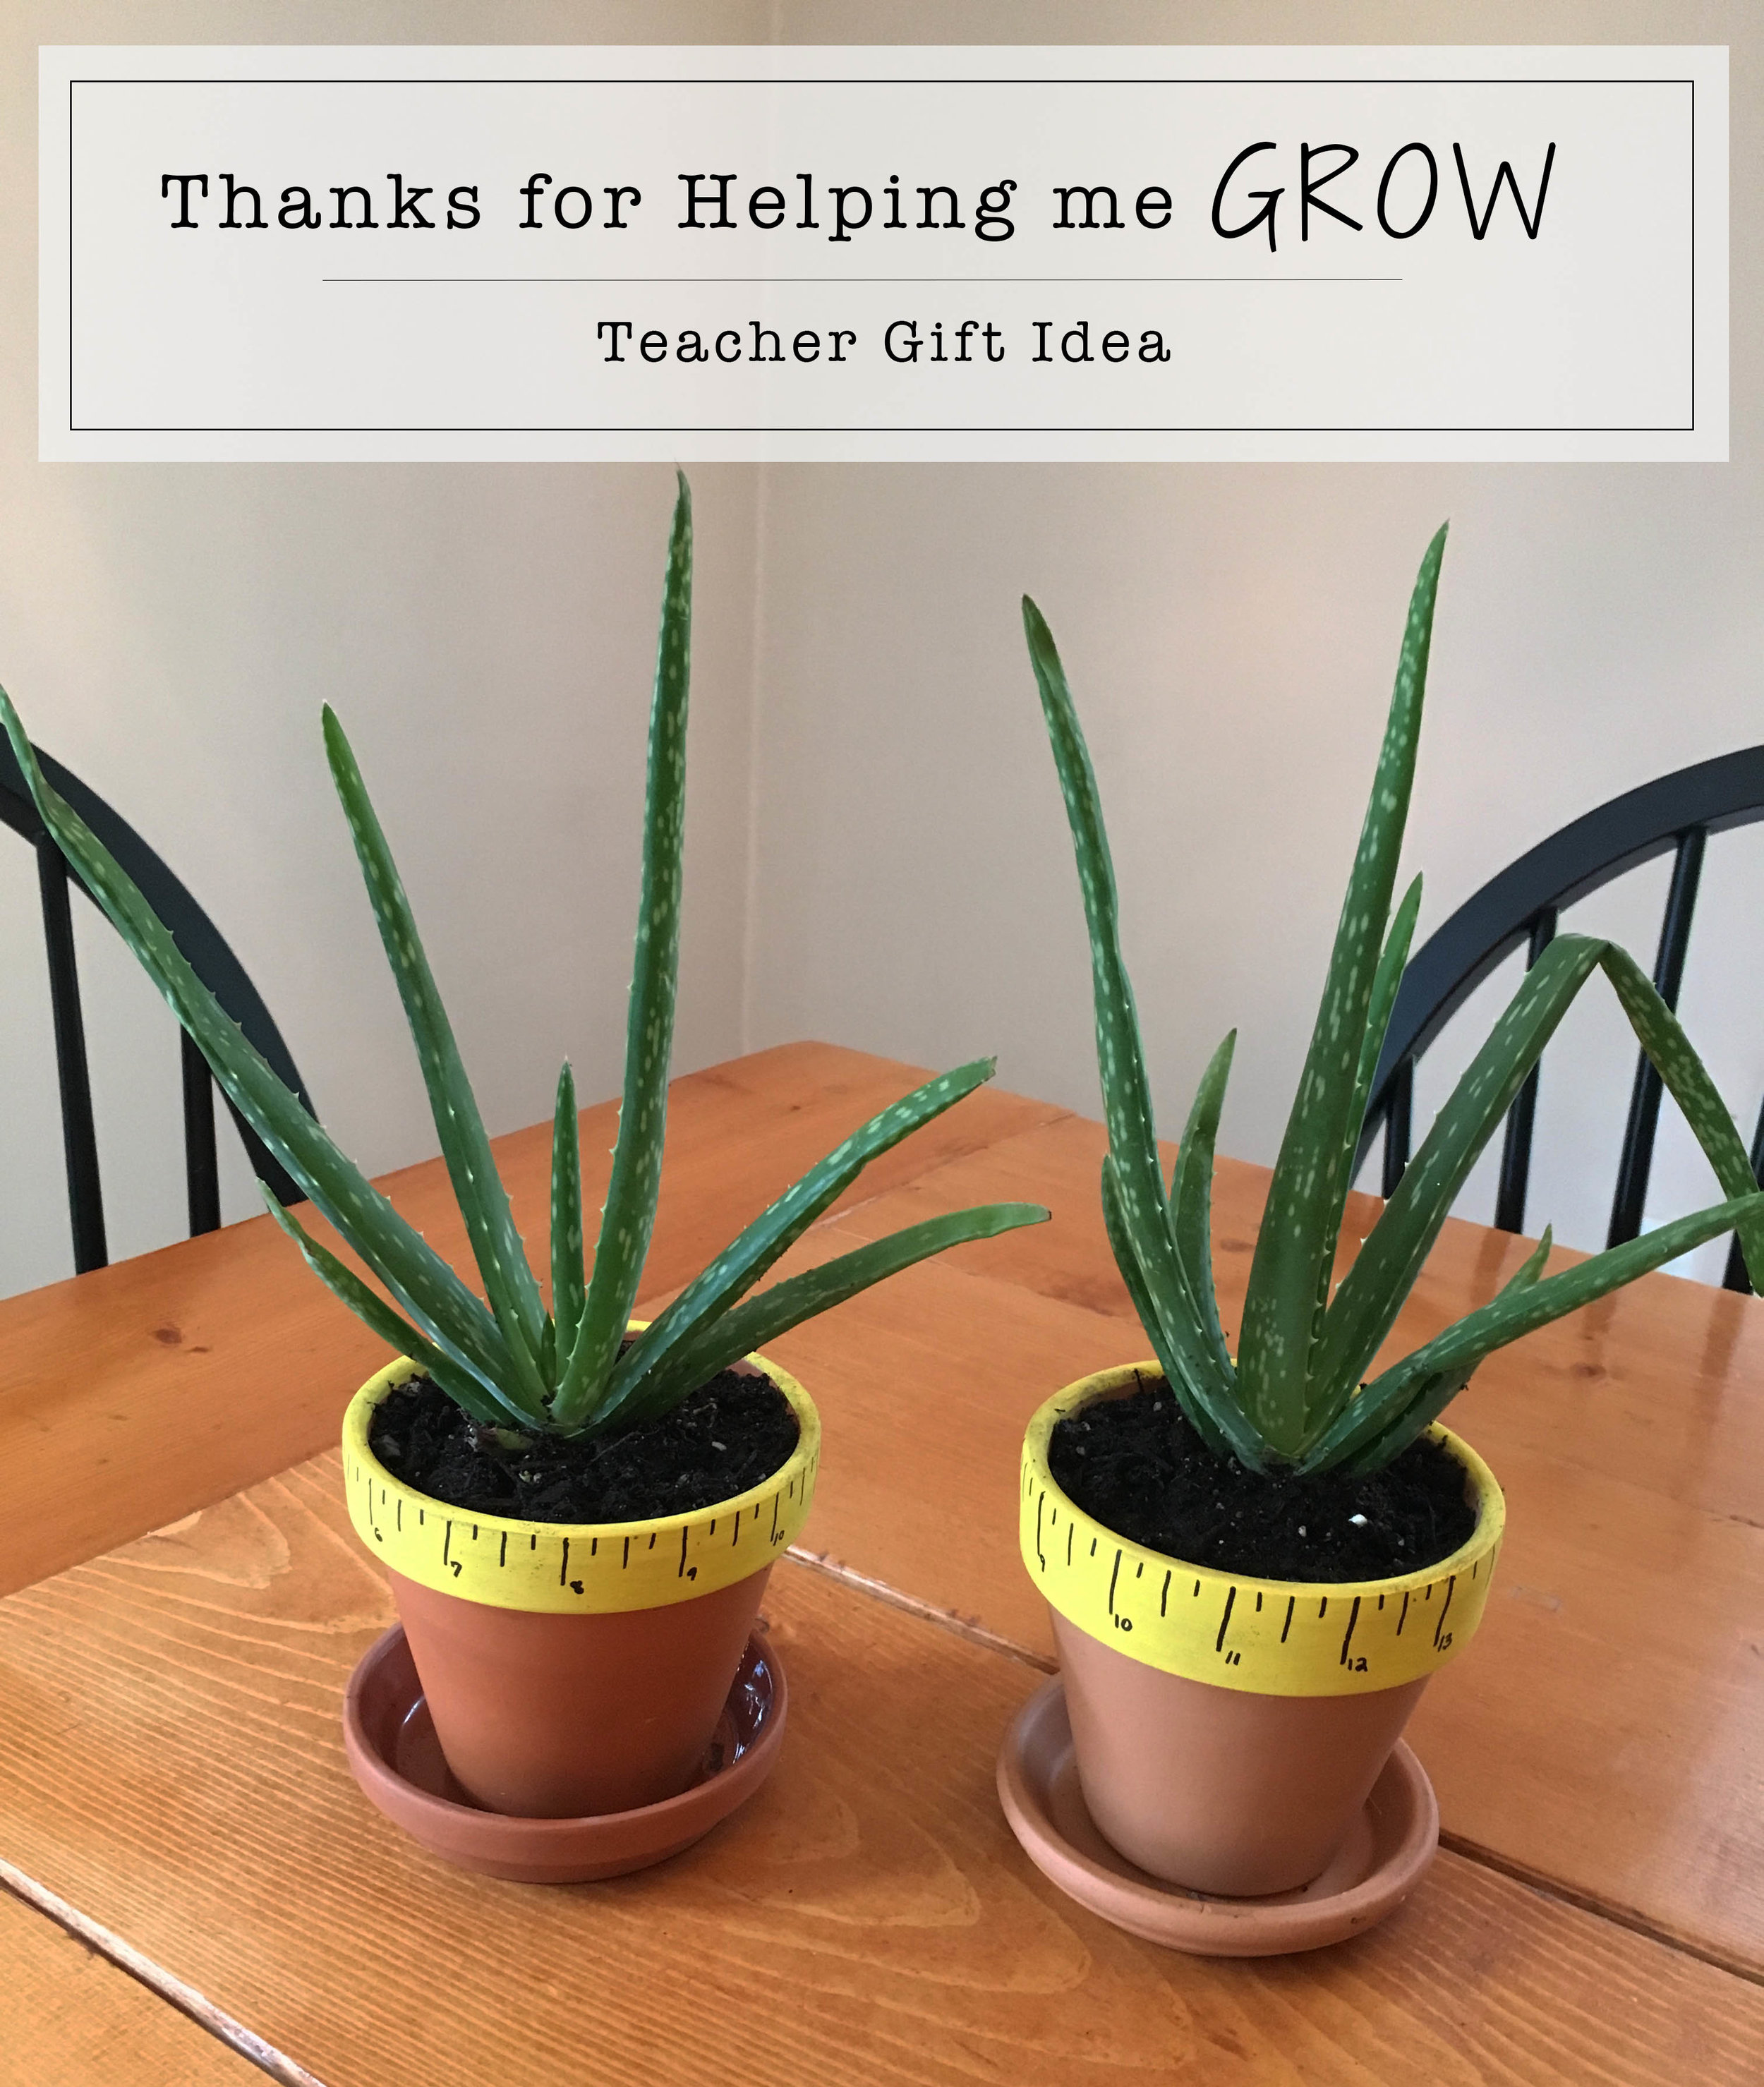 """Thanks for Helping me GROW"" DIY Teacher Gift Idea + Free Printable Tag"